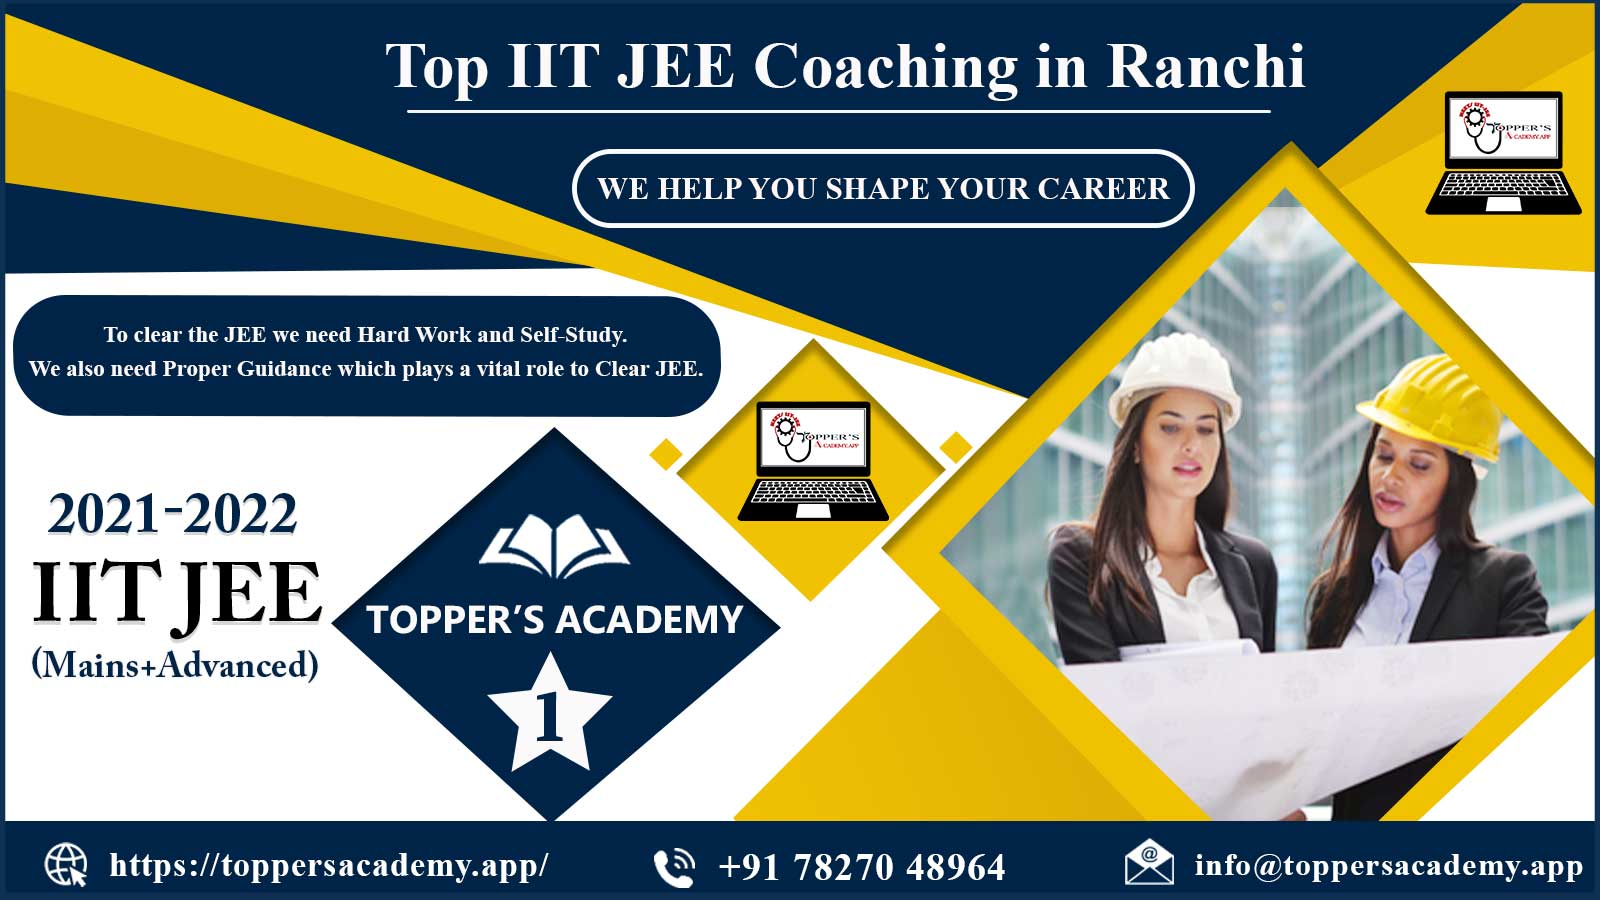 Toppers Academy IIT JEE Coaching in Ranchi